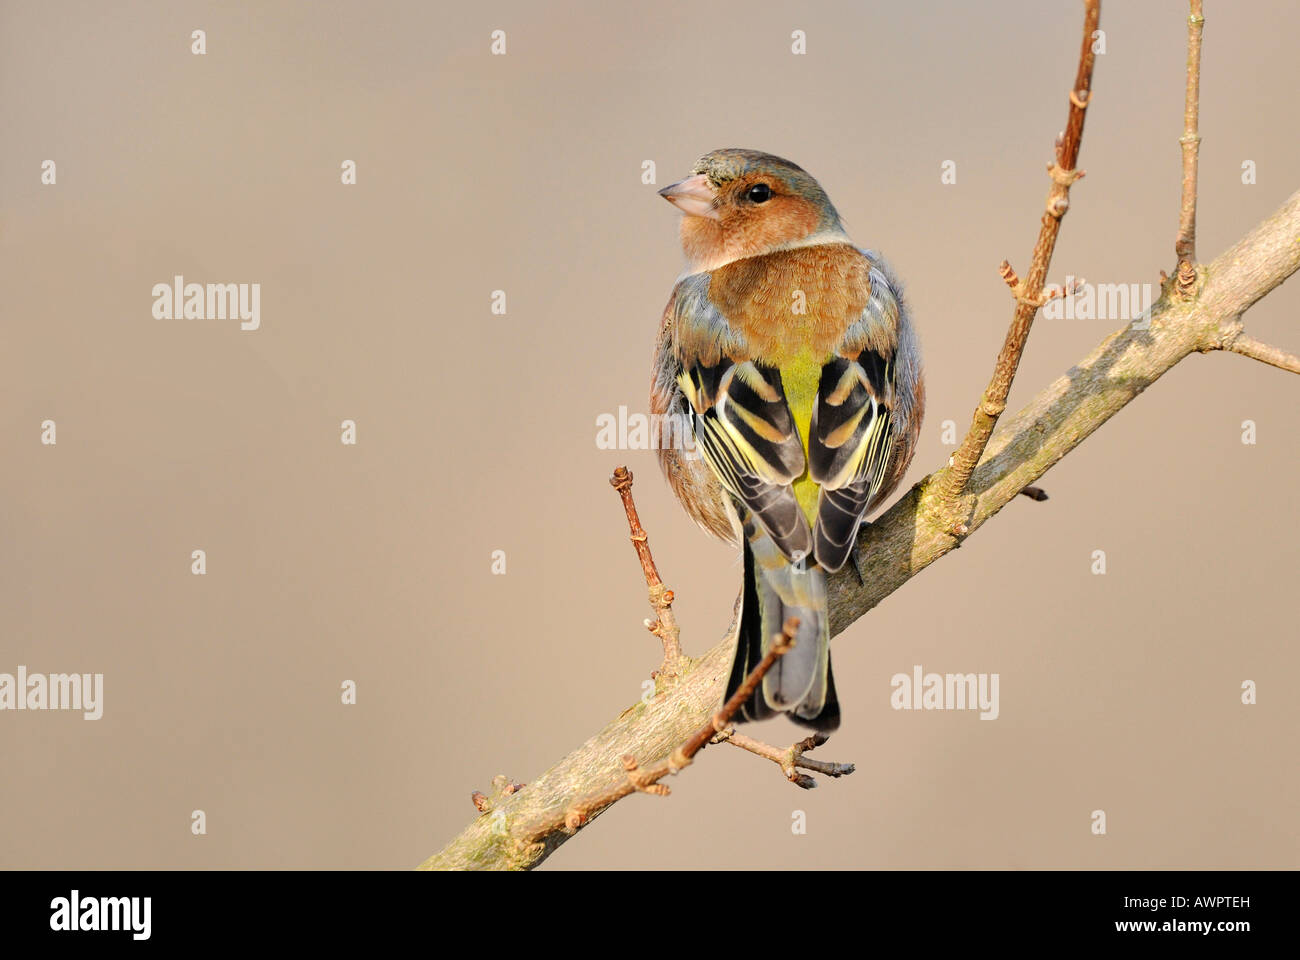 Chaffinch or Spink (Fringilla coelebs) perched on a branch - Stock Image